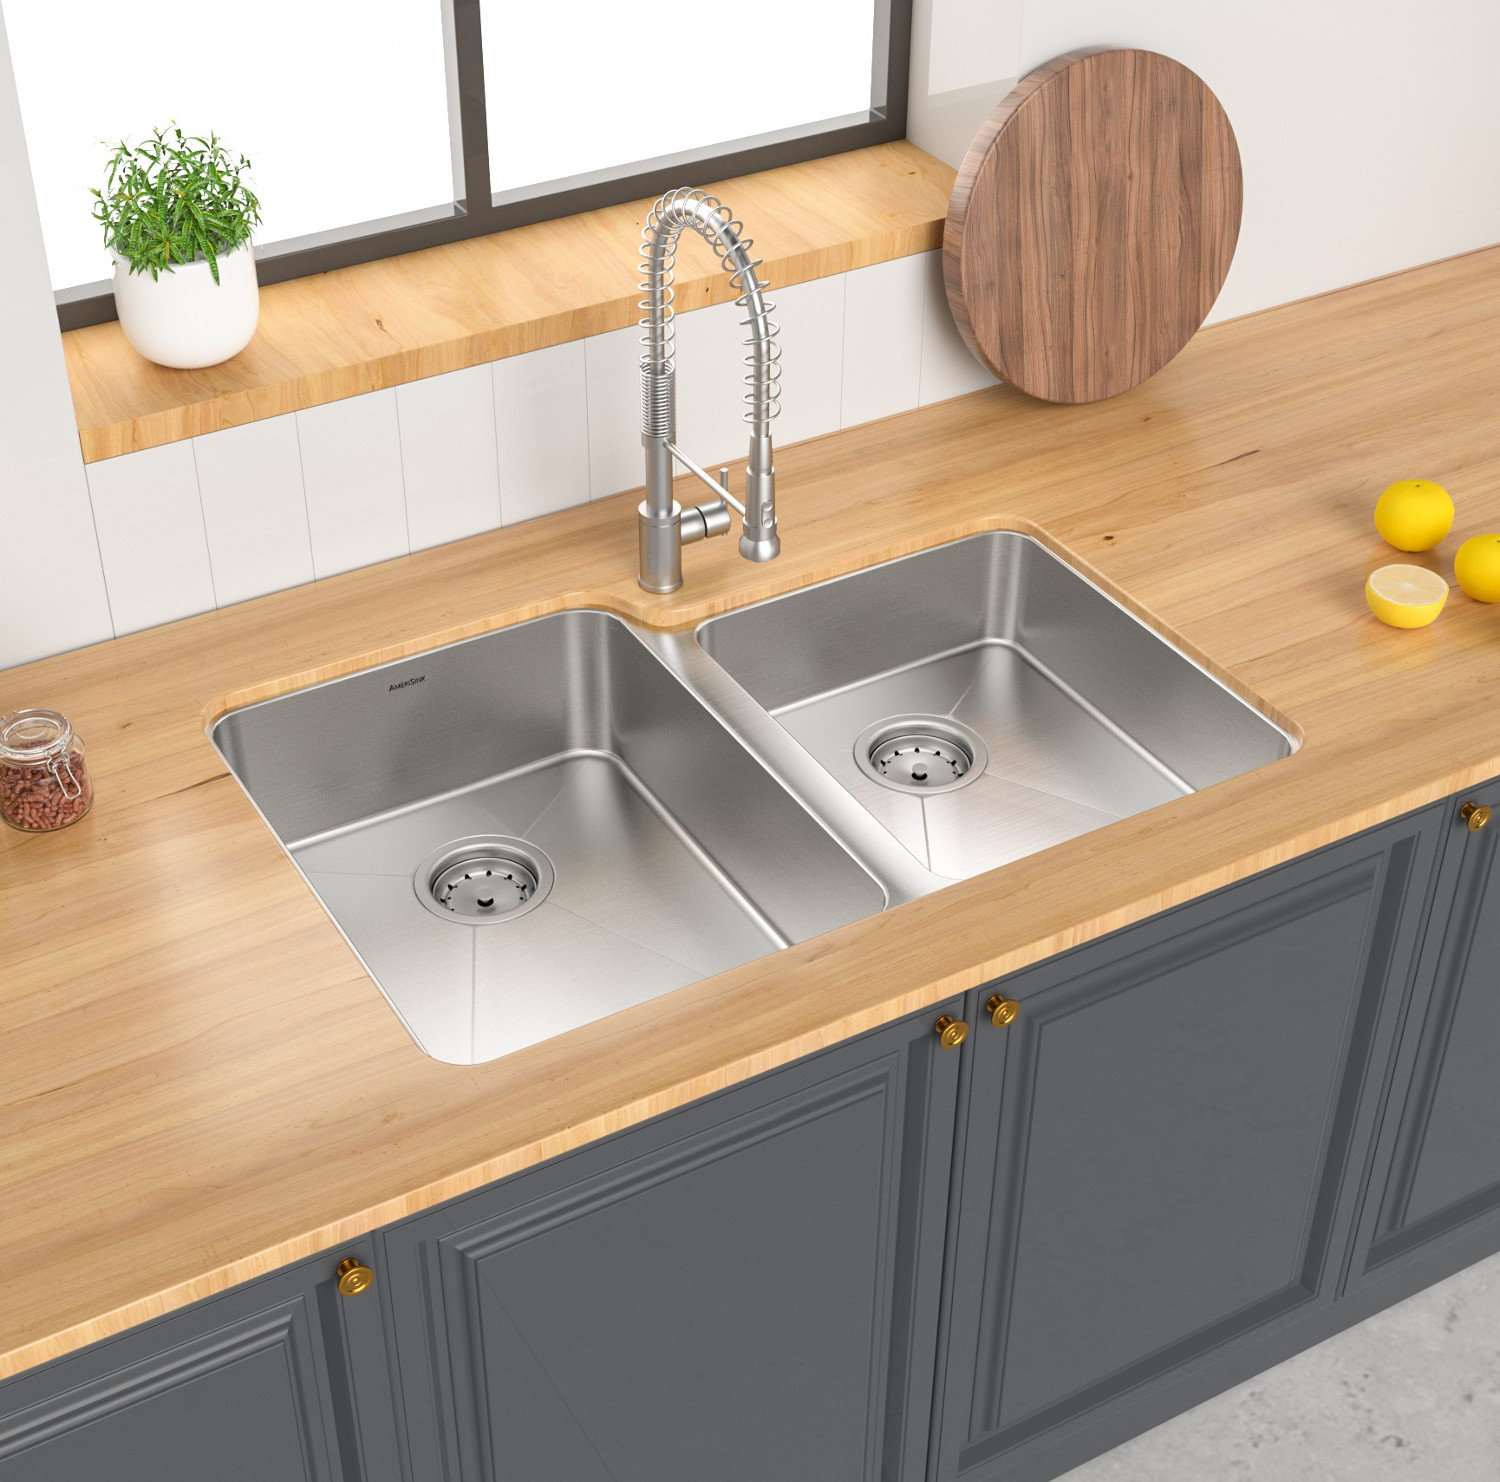 Double Bowl Undermount Legend Stainless Steel Kitchen Sink